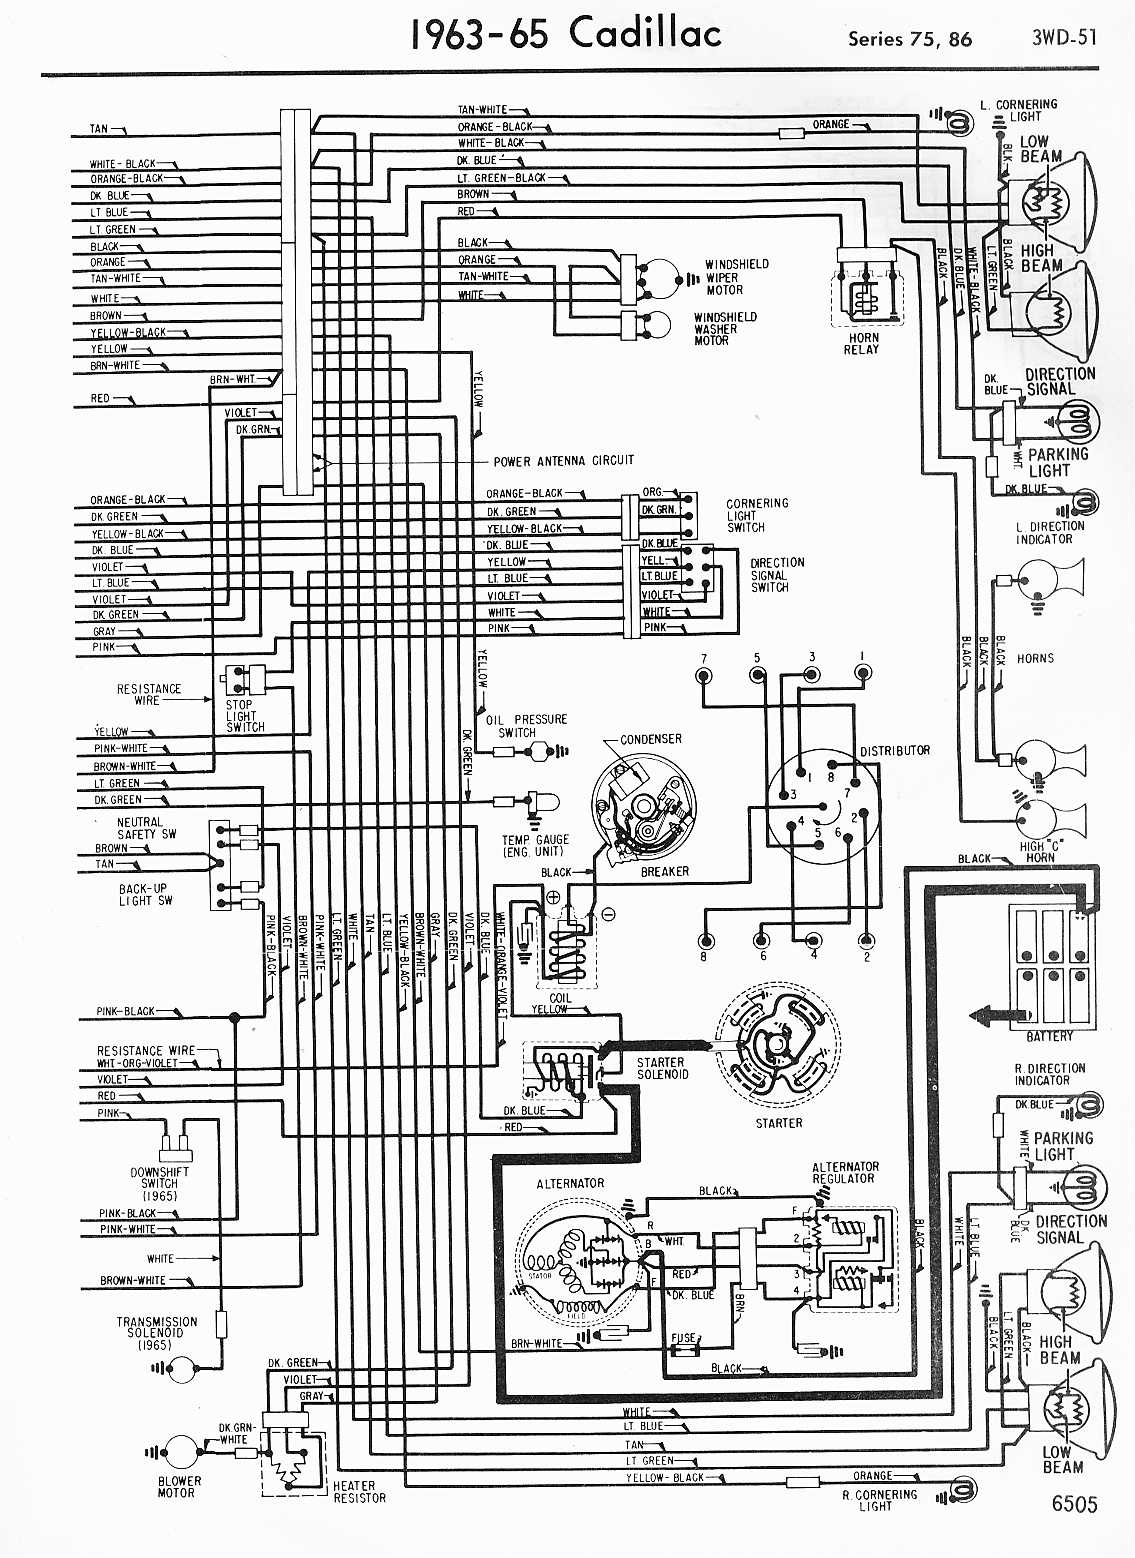 Cadillac Ac Diagram Opinions About Wiring Diagram \u2022 Cadillac Sunroof Diagram  Cadillac Ac Diagram